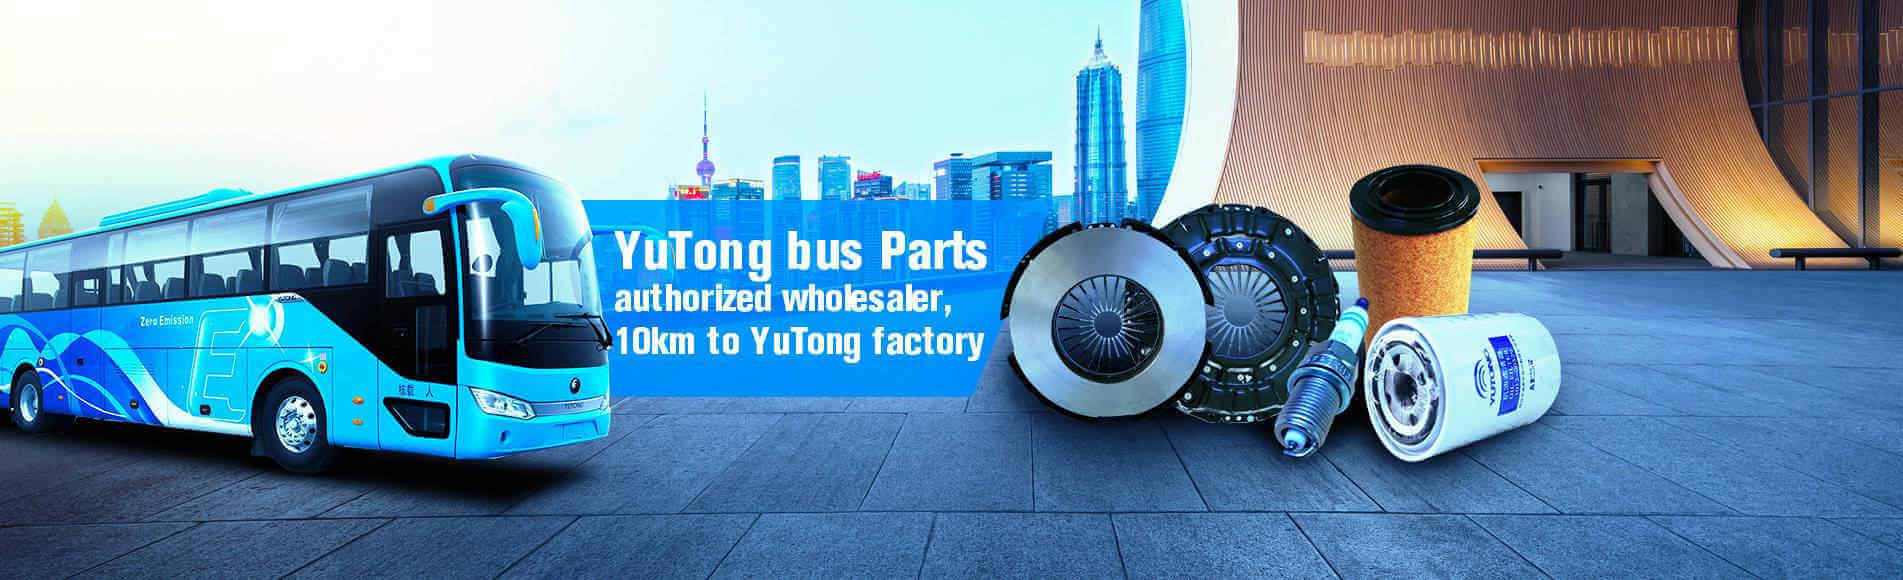 Yutong bus part